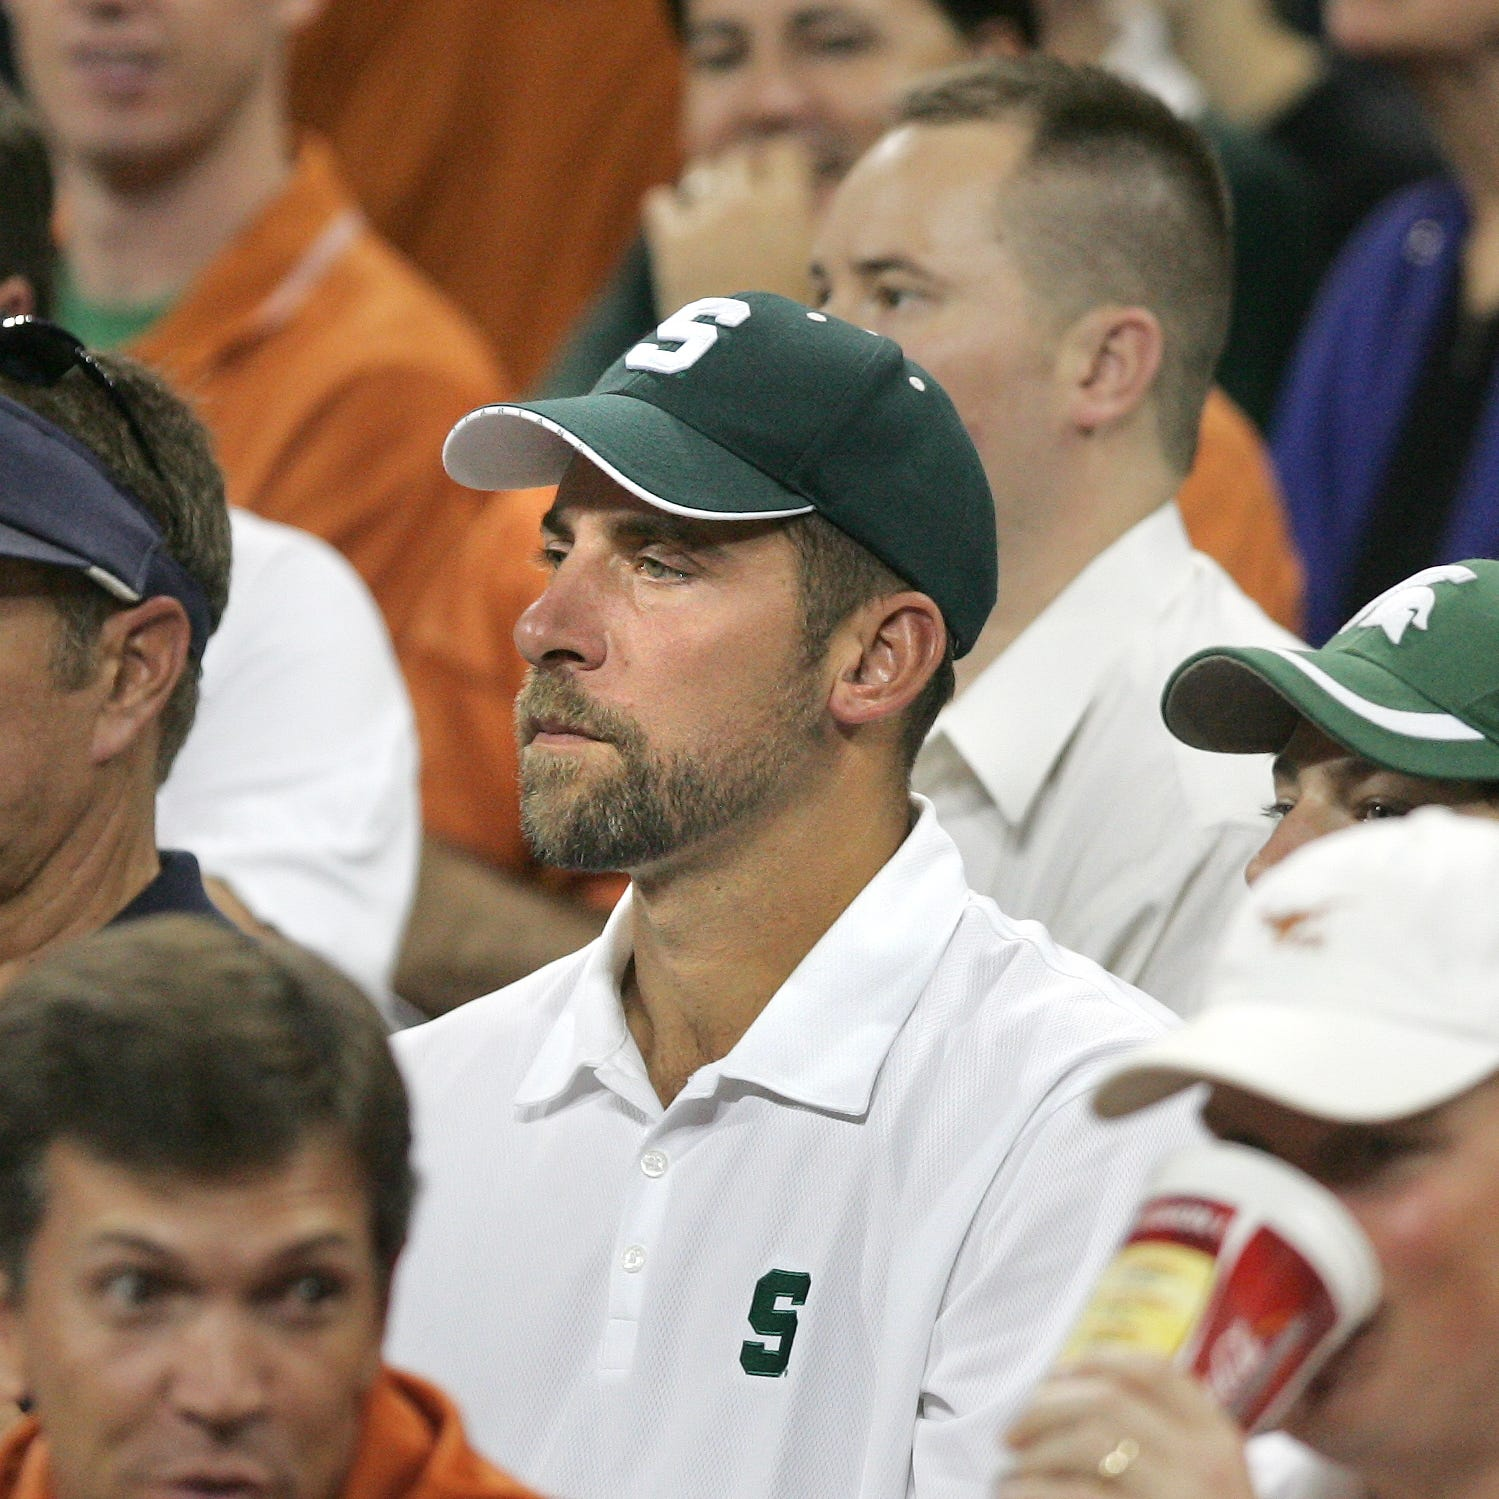 MSU fan John Smoltz on rivalry: 'Your whole year can be made'